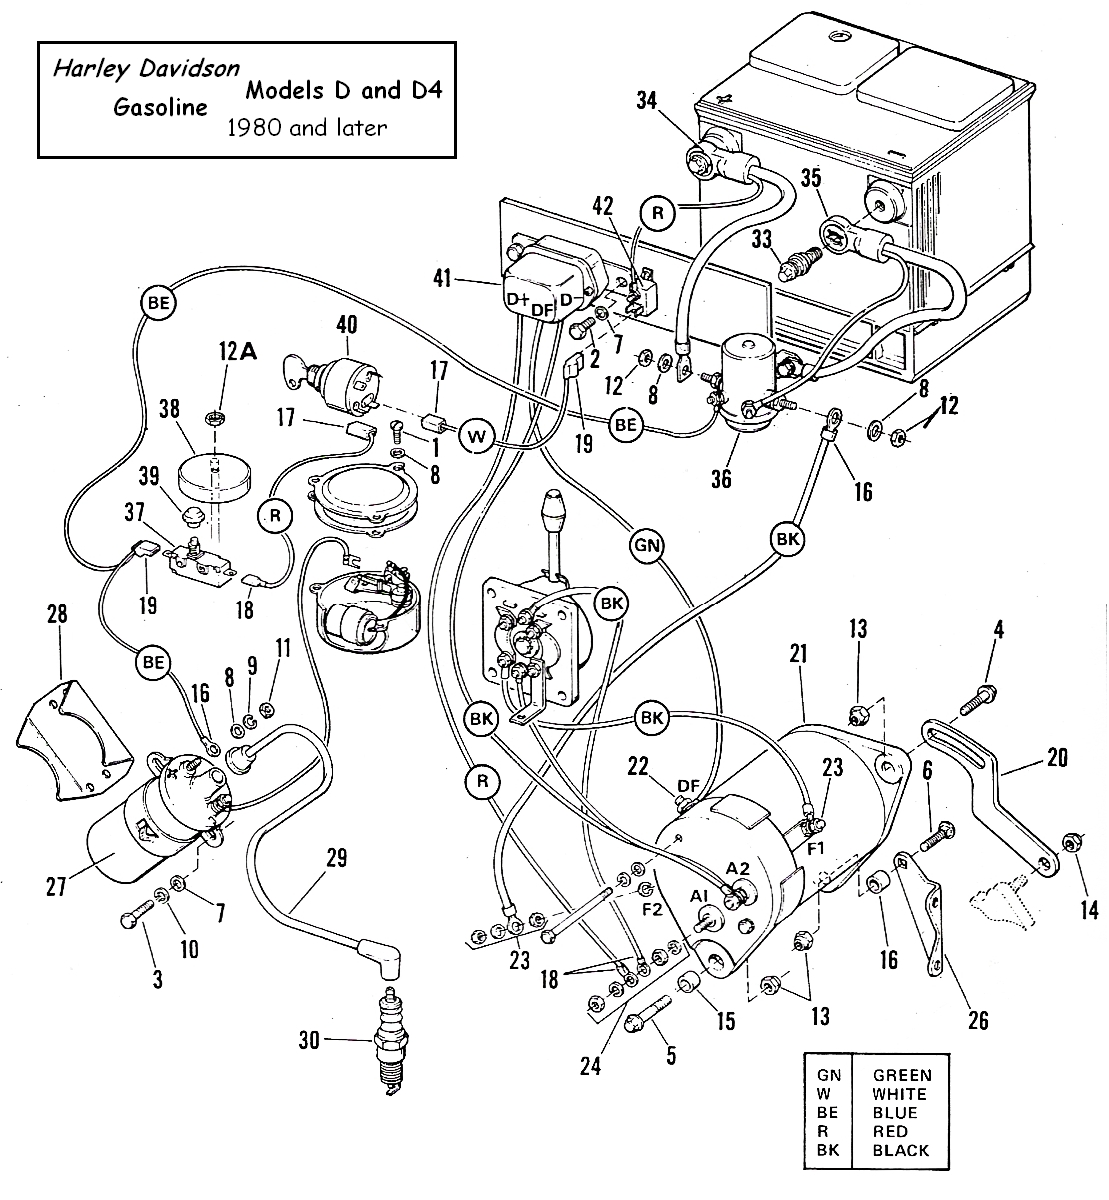 starter generator wiring diagram club car starter yamaha golf cart starter generator wiring diagram wiring diagram on starter generator wiring diagram club car